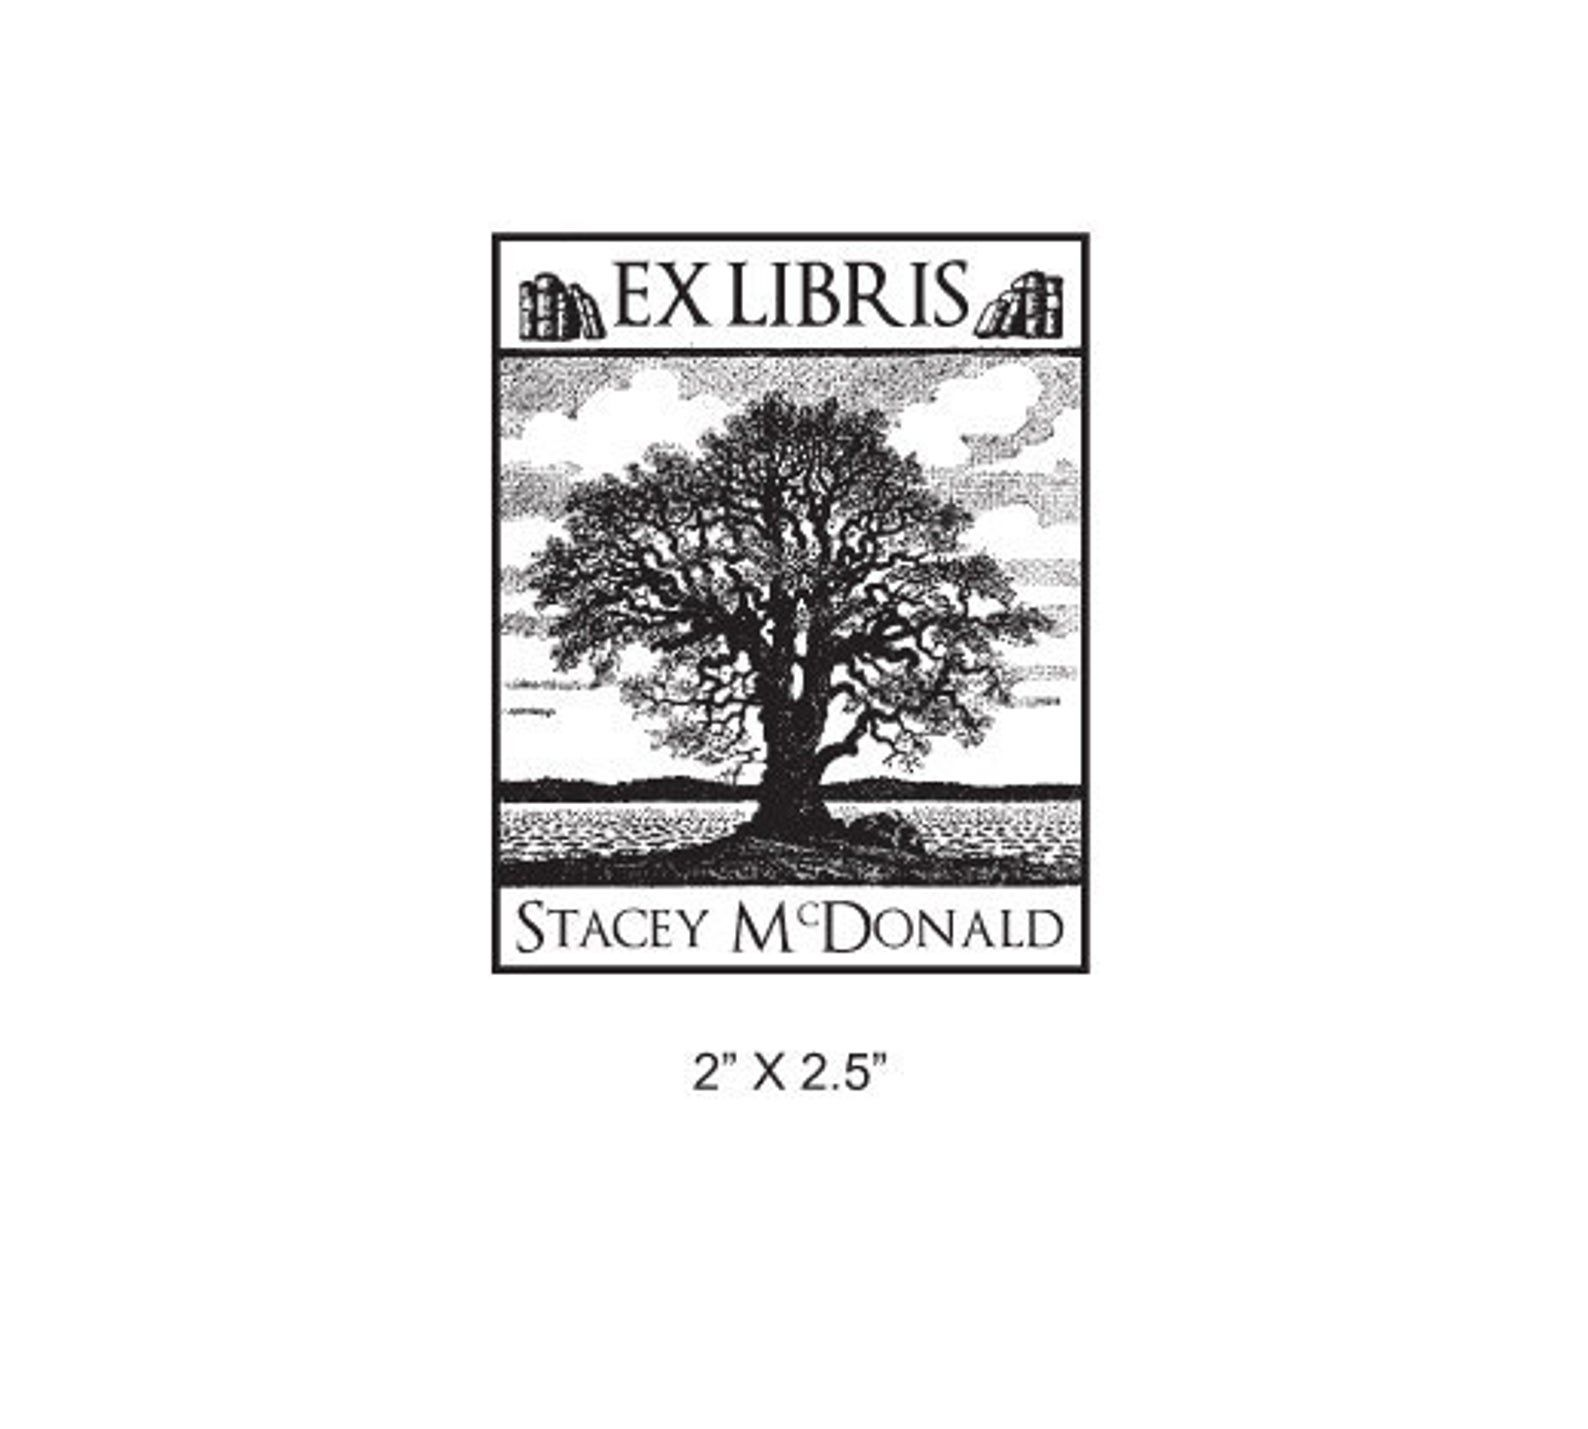 Image of ex libris stamp with oak tree